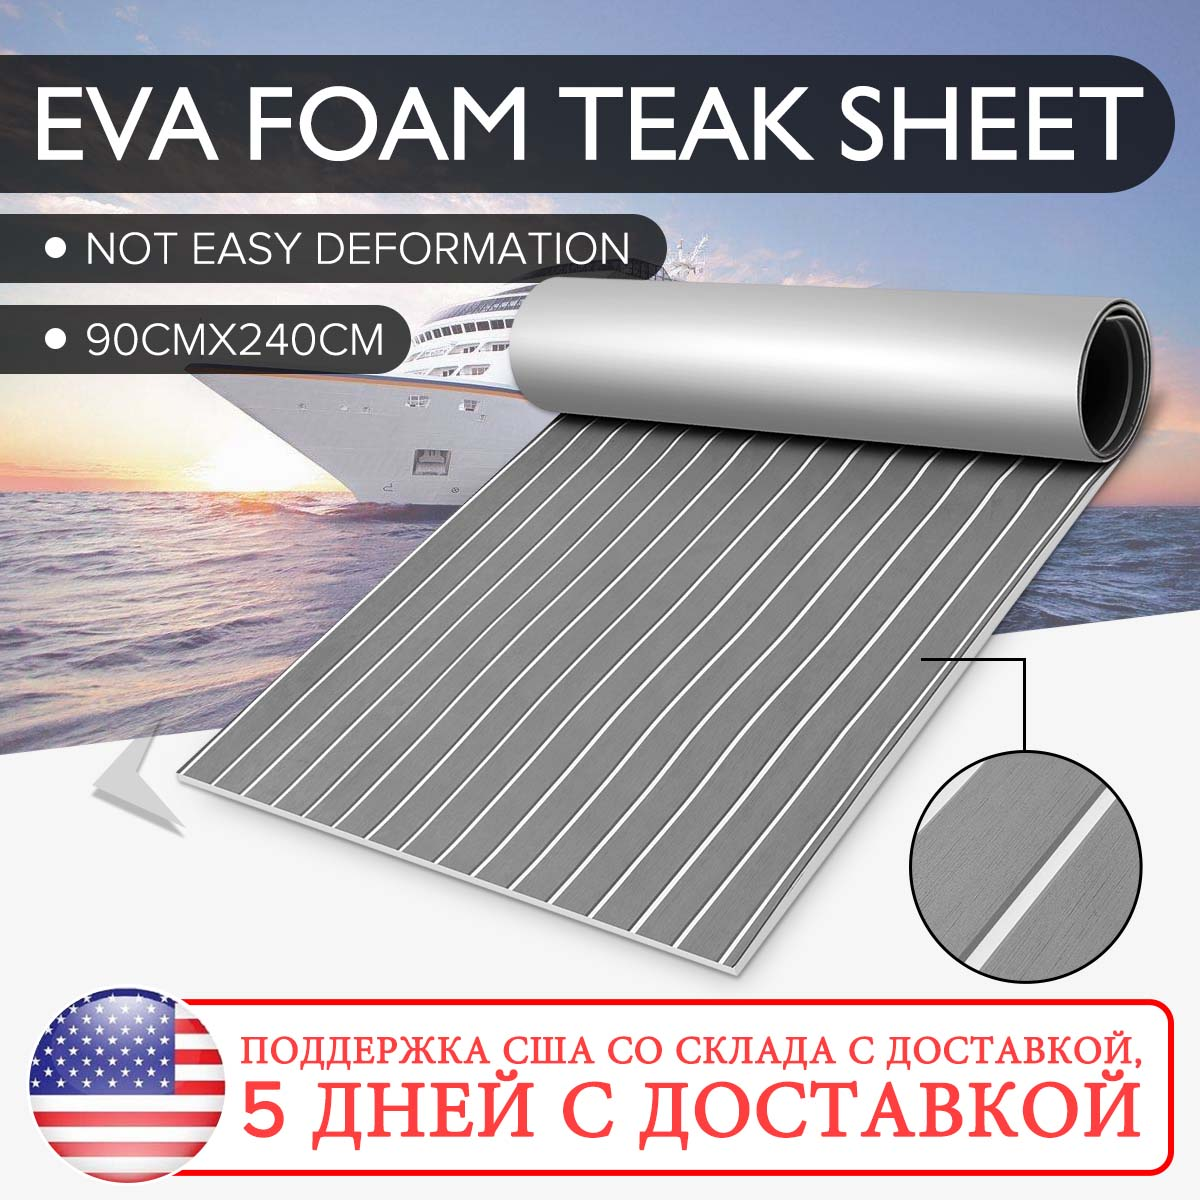 6mm 90x240cm Non-skid EVA Foam Teak Boat Floor Self Adhesive Boat Yacht Sheet Synthetic Decking Foam Floor Mat Grey+White Line6mm 90x240cm Non-skid EVA Foam Teak Boat Floor Self Adhesive Boat Yacht Sheet Synthetic Decking Foam Floor Mat Grey+White Line